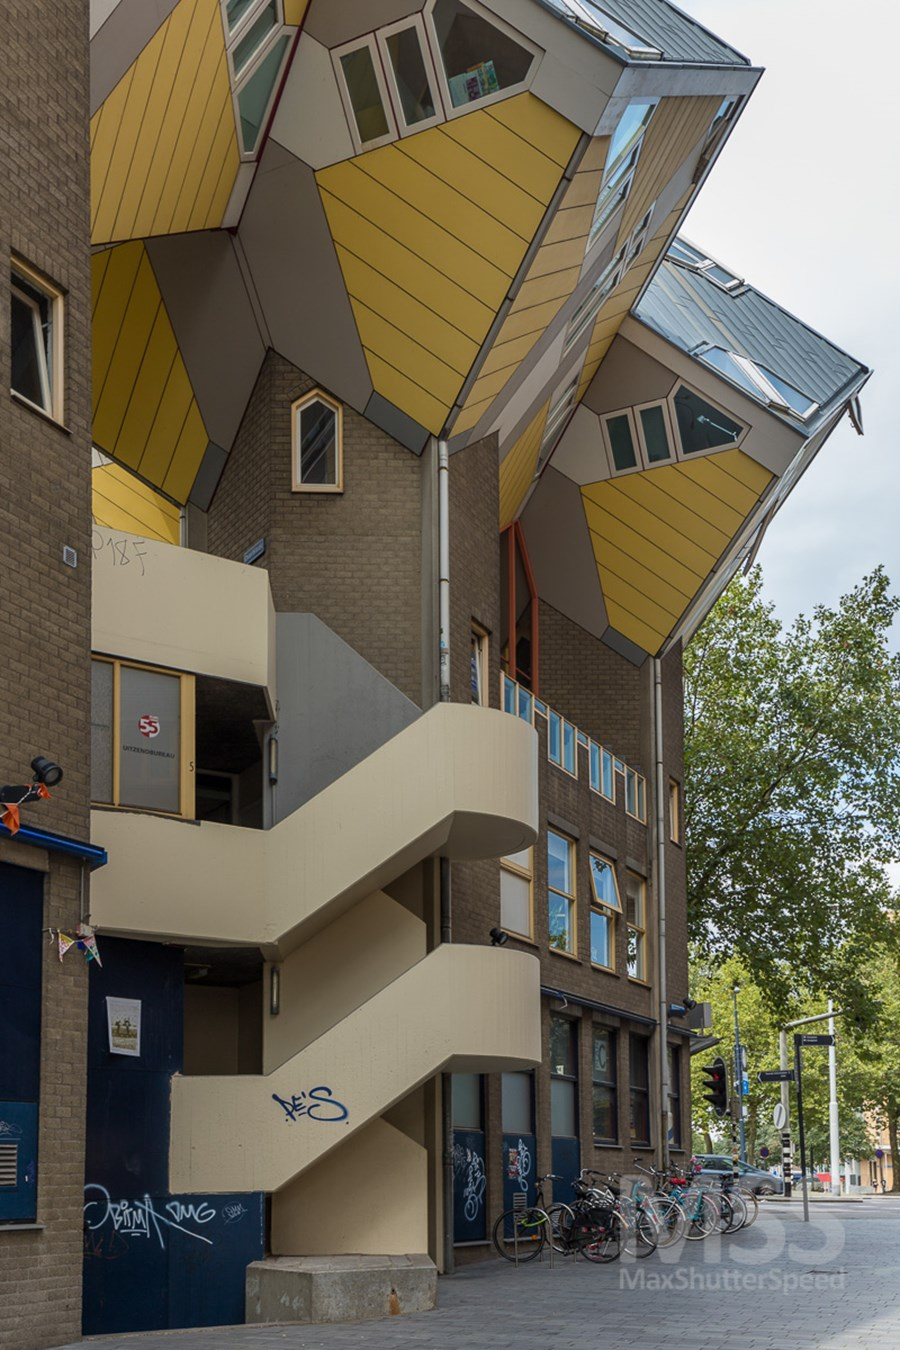 Cube houses in Rotterdam by MaxShutterSpeed 16